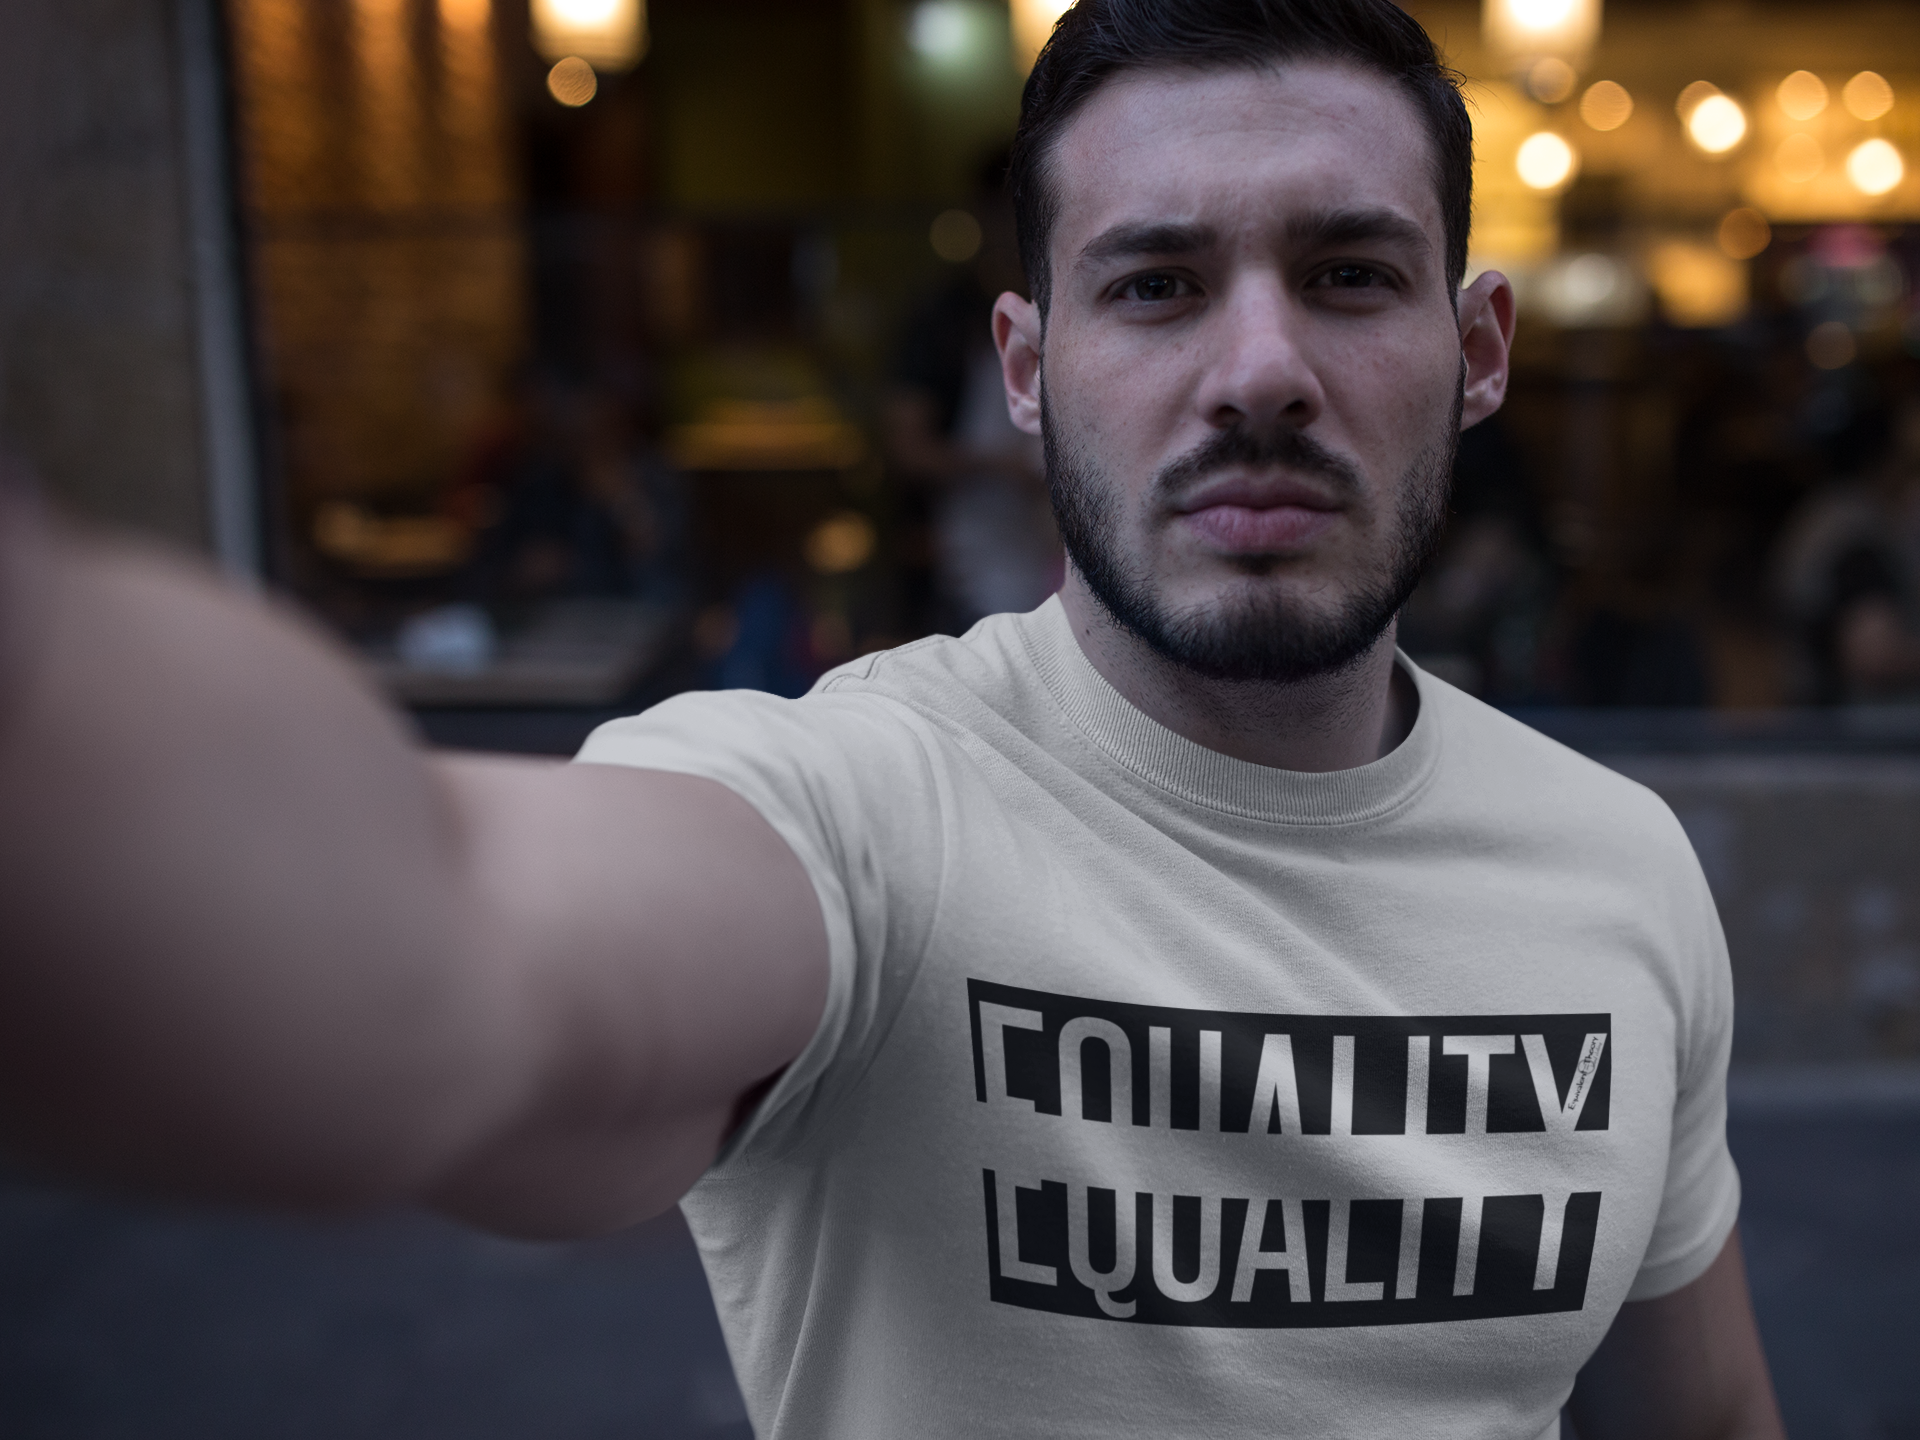 EQUALITY - Short-Sleeve Unisex T-Shirt